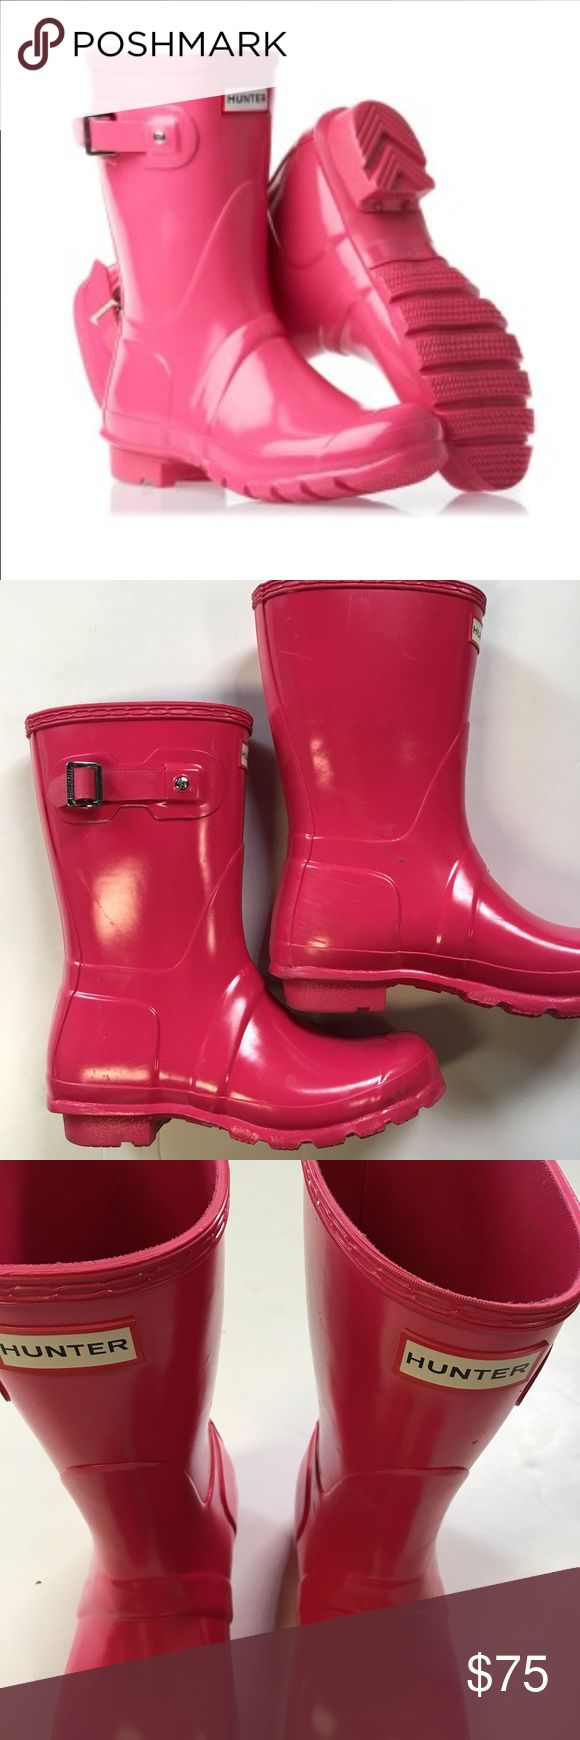 Hunter Short Wellies Rain Boots In Hot Pink Magenta or vibrant pink in color, these original short wellies do have a bit of scuffing at the back heels. They are in otherwise great shape. I do not have the original box anymore. Hunter Shoes Winter & Rain Boots